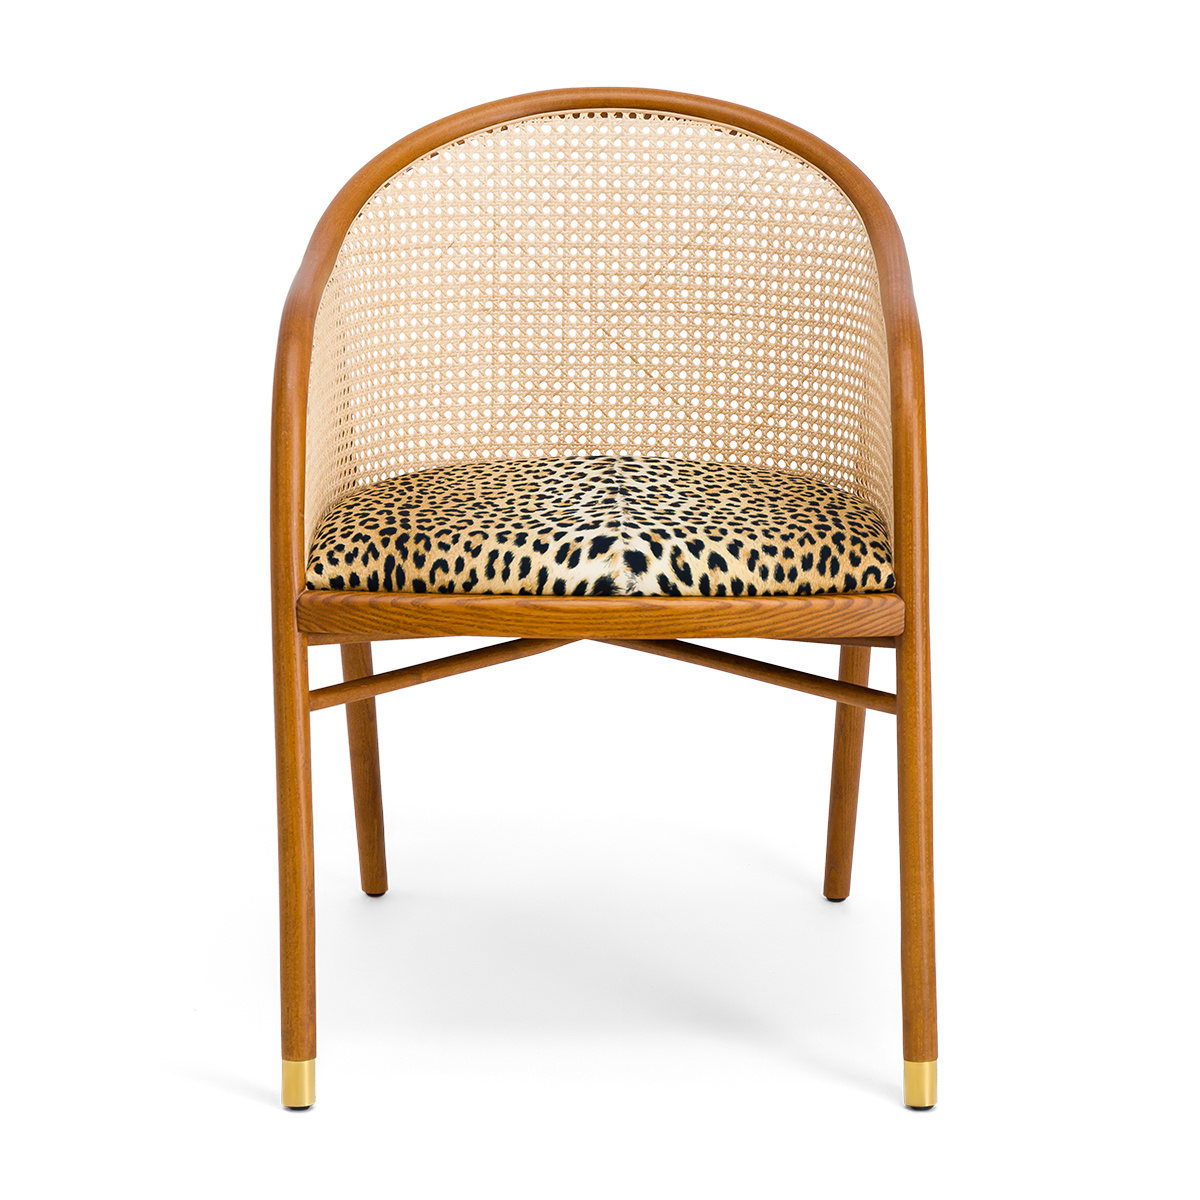 Cavallo Armchair, Panther Print with Cherrywood Frame